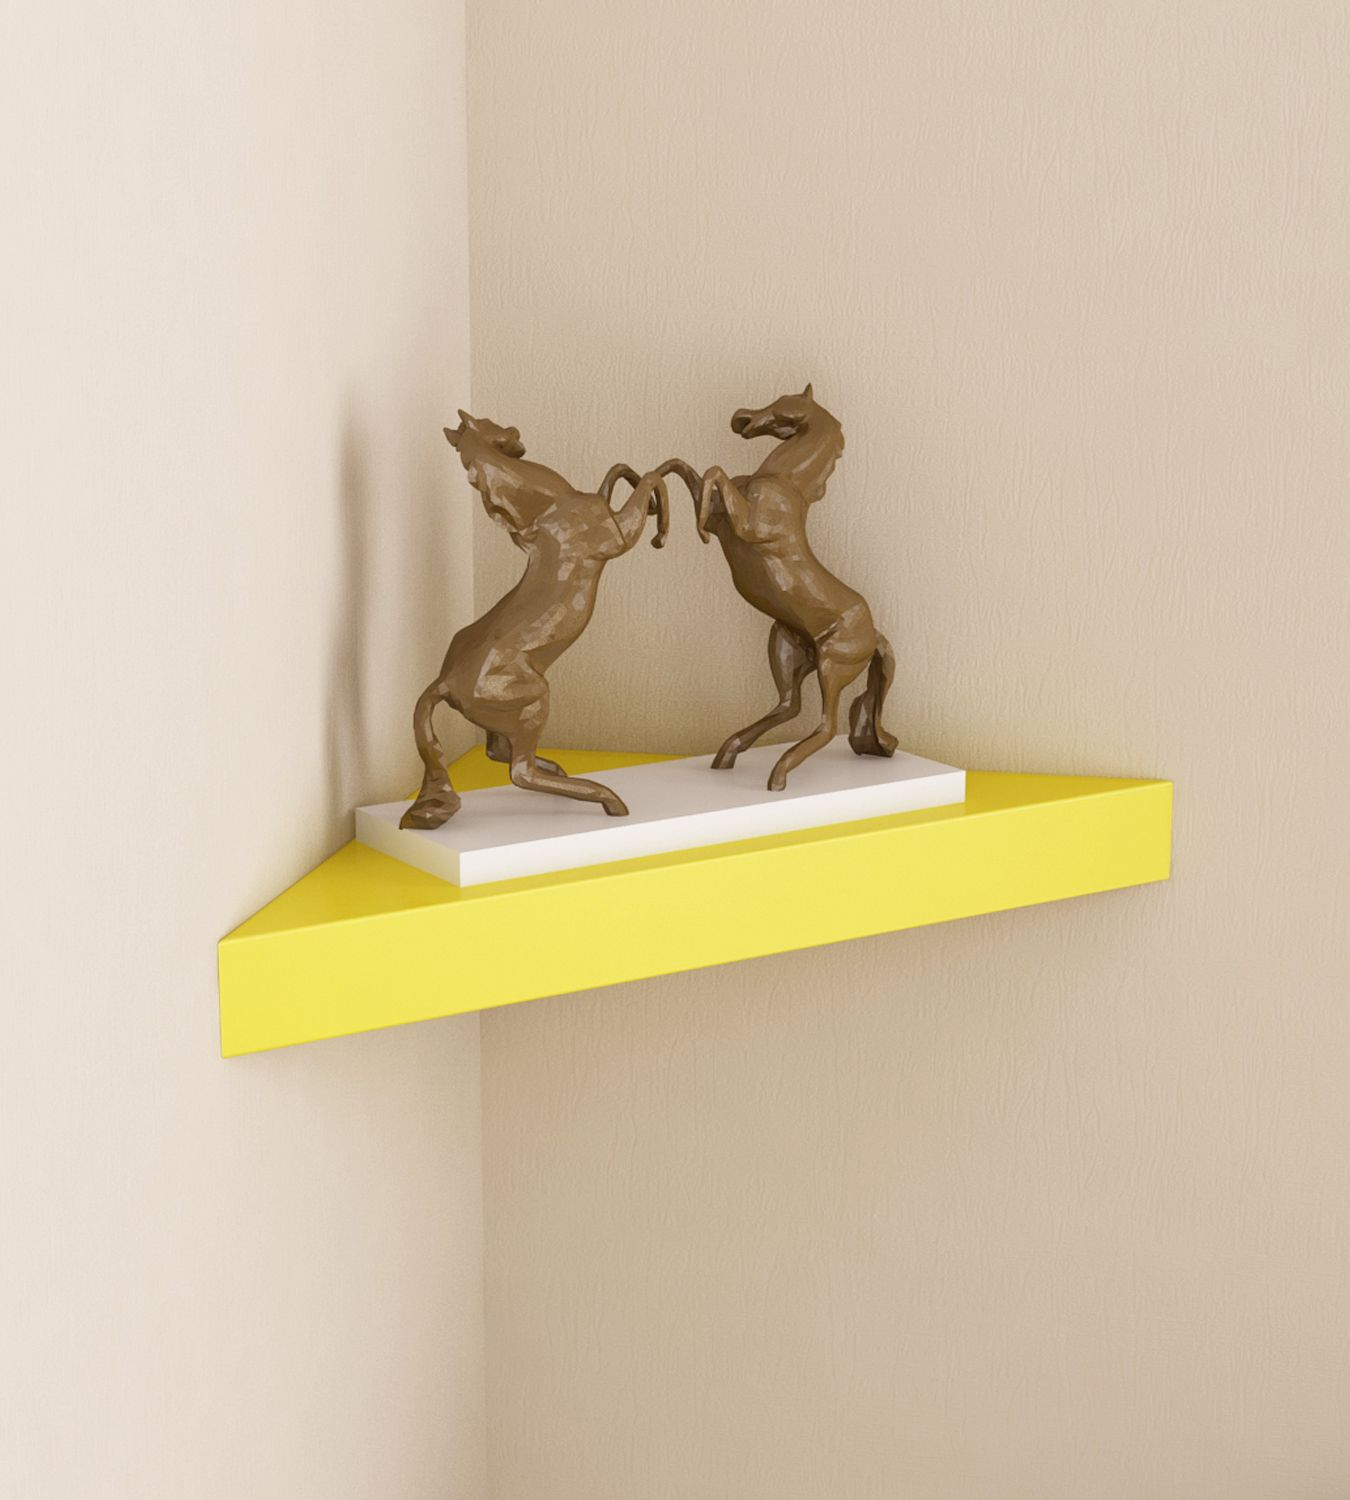 Home Sparkle MDF Decorative Corner Wall Shelves, Suitable For Living Room/Bed Room (Designed By Craftsman)